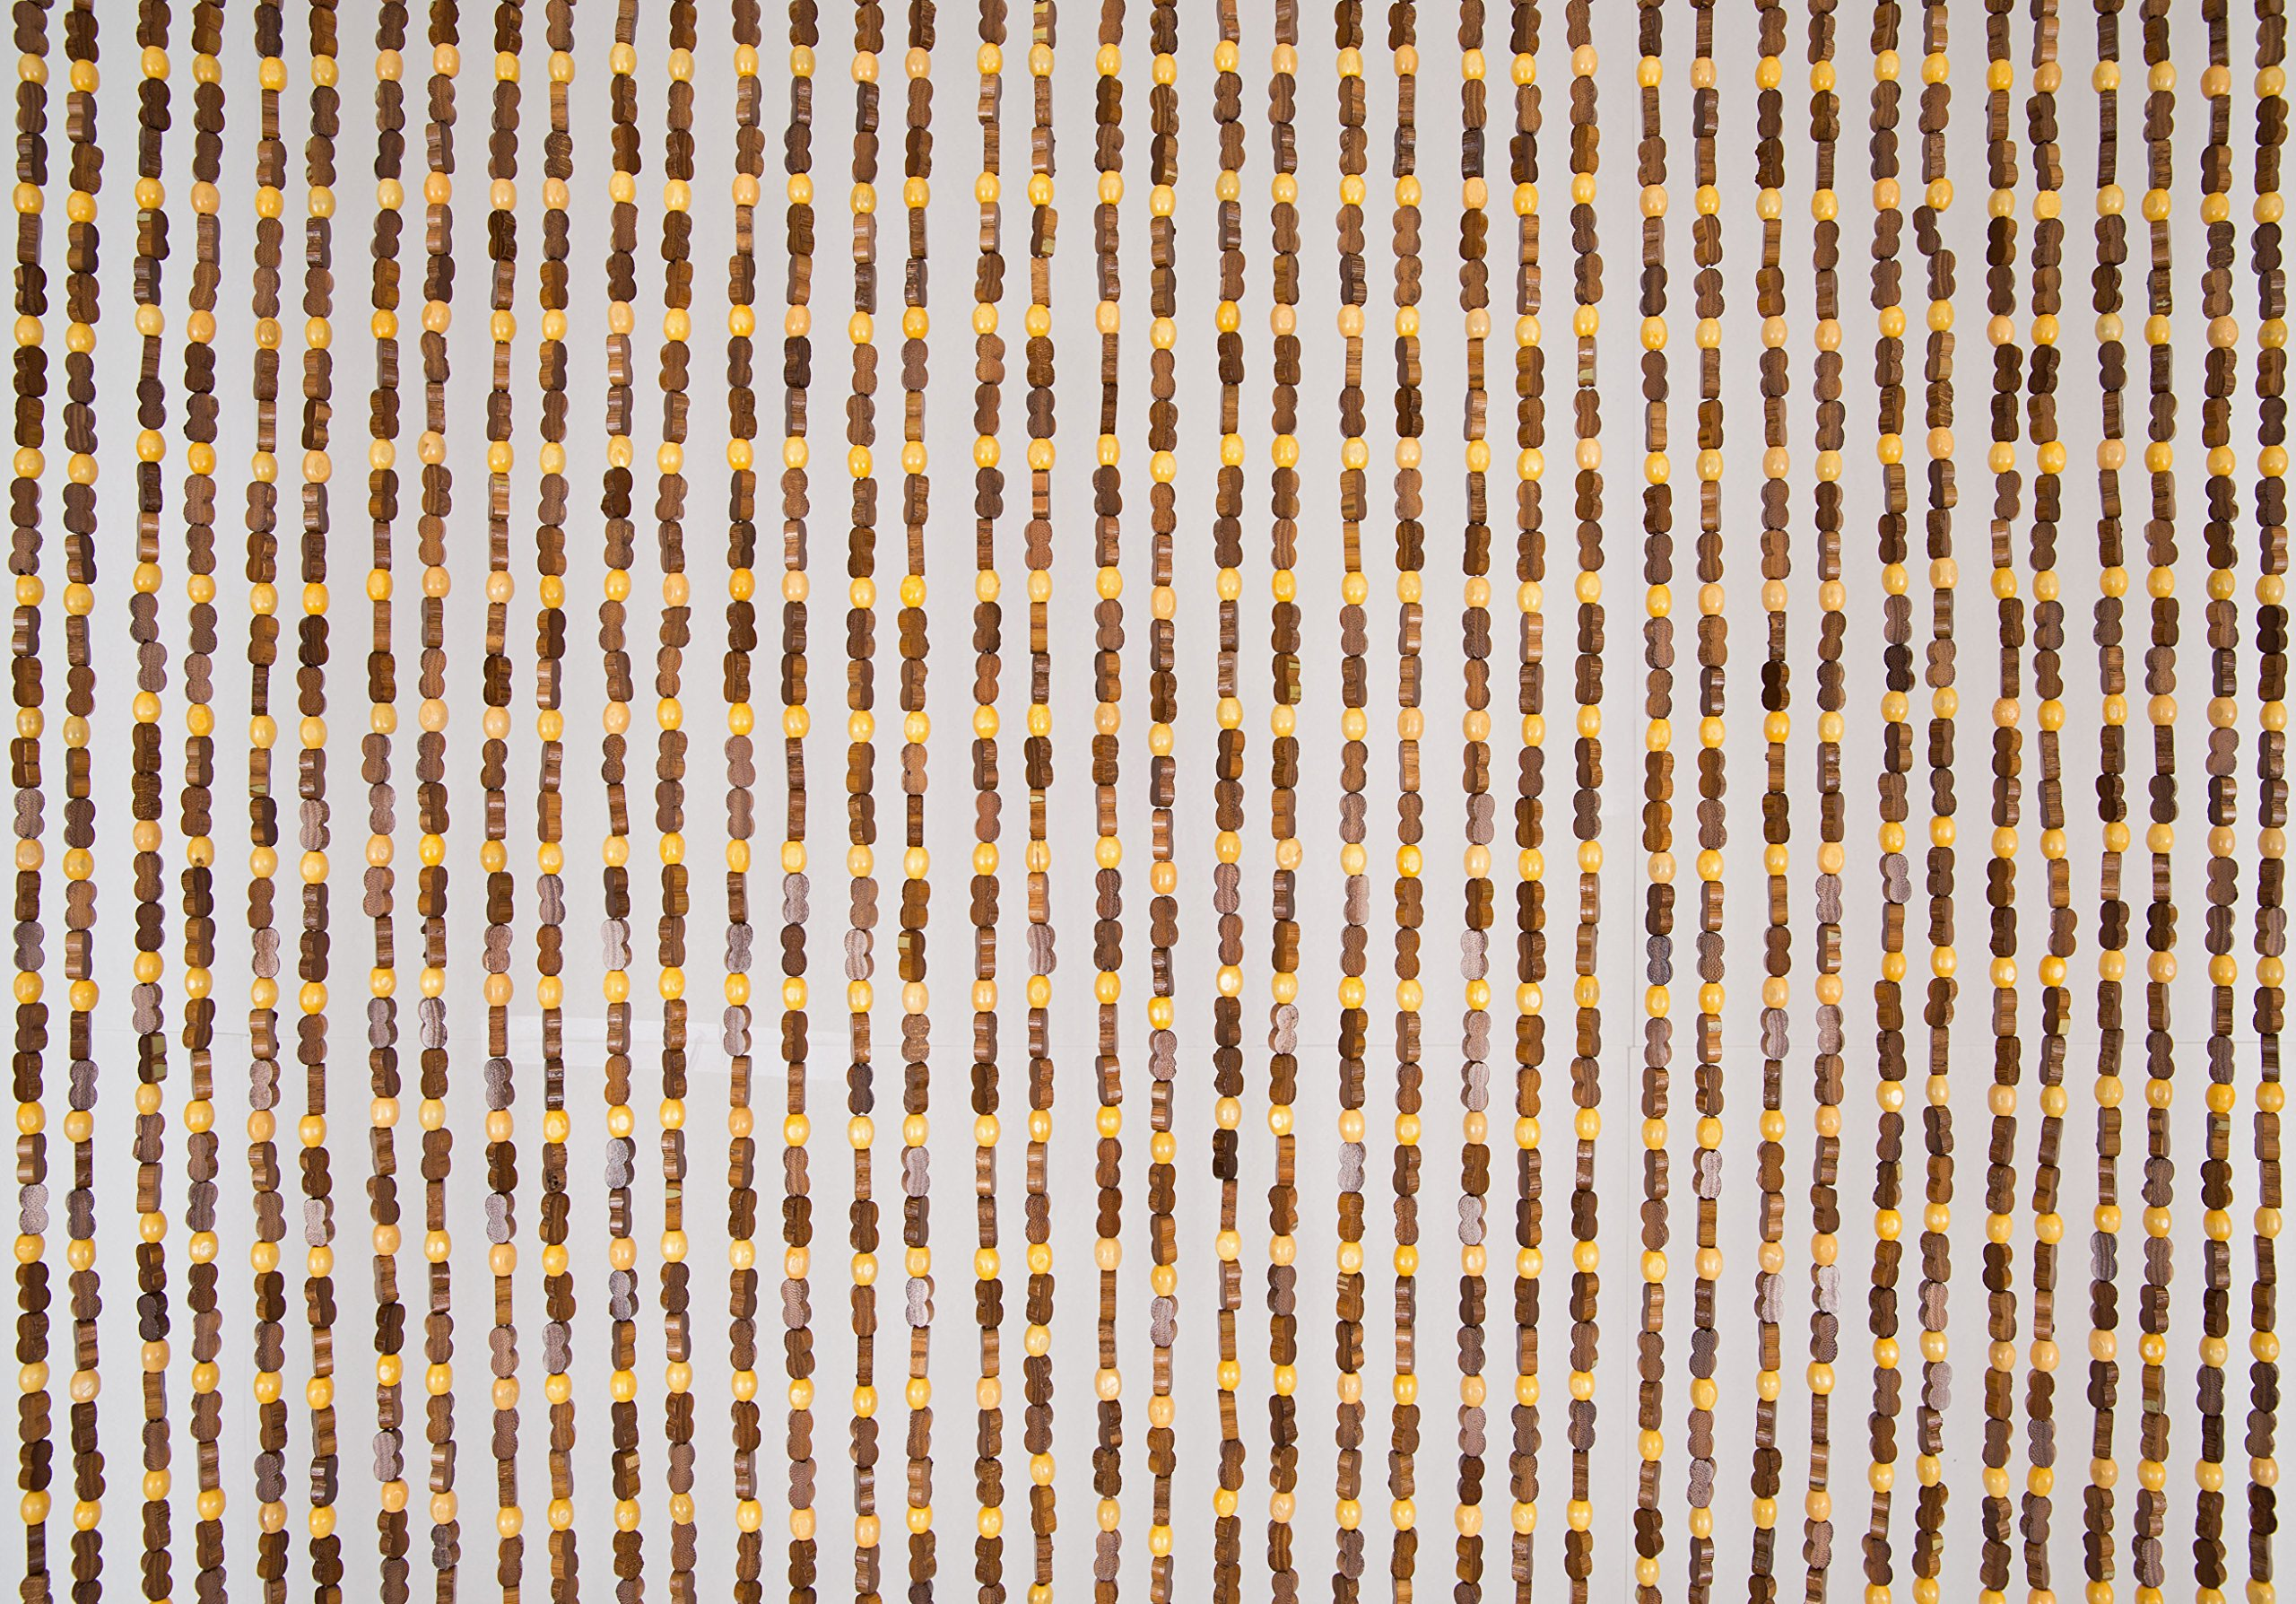 BeadedString Natural Wood and Bamboo Beaded Curtain-45 Strands-77 High-Plain Design-Bamboo and Wooden Doorway Beads-Boho Bohemian Curtain-35.5'' W x 77'' H-SunshineBr by BeadedString (Image #6)